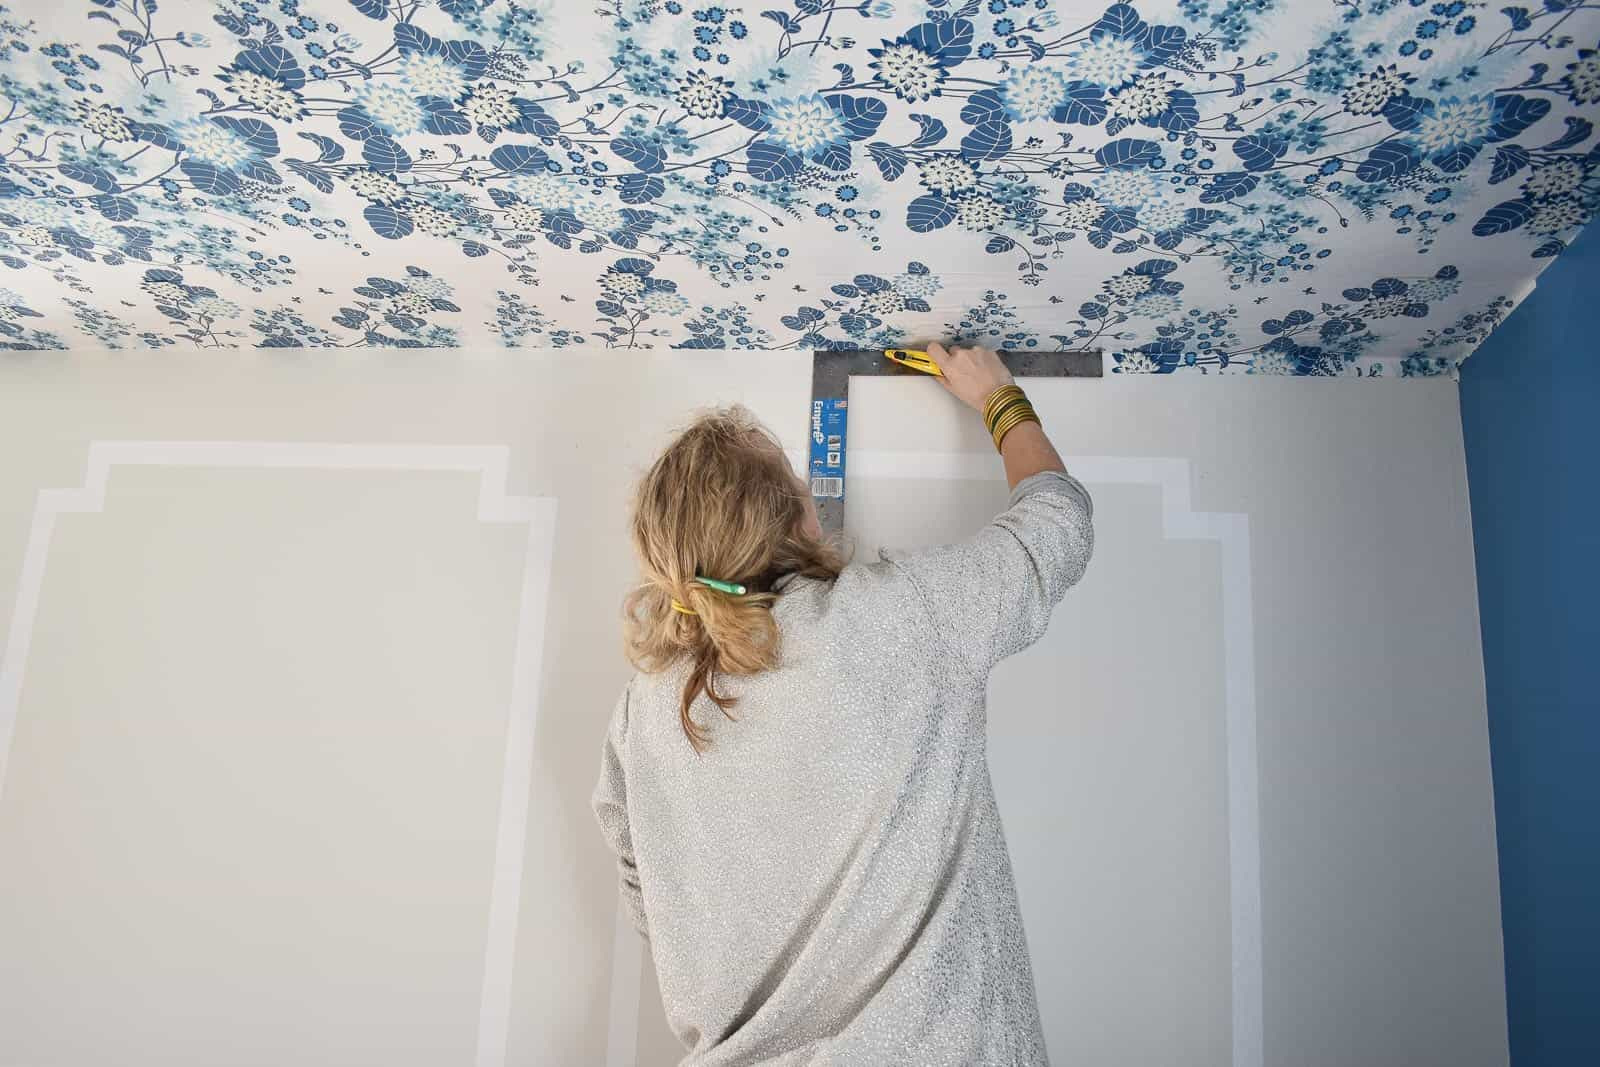 use a straight edge to cut the wallpaper at the corner